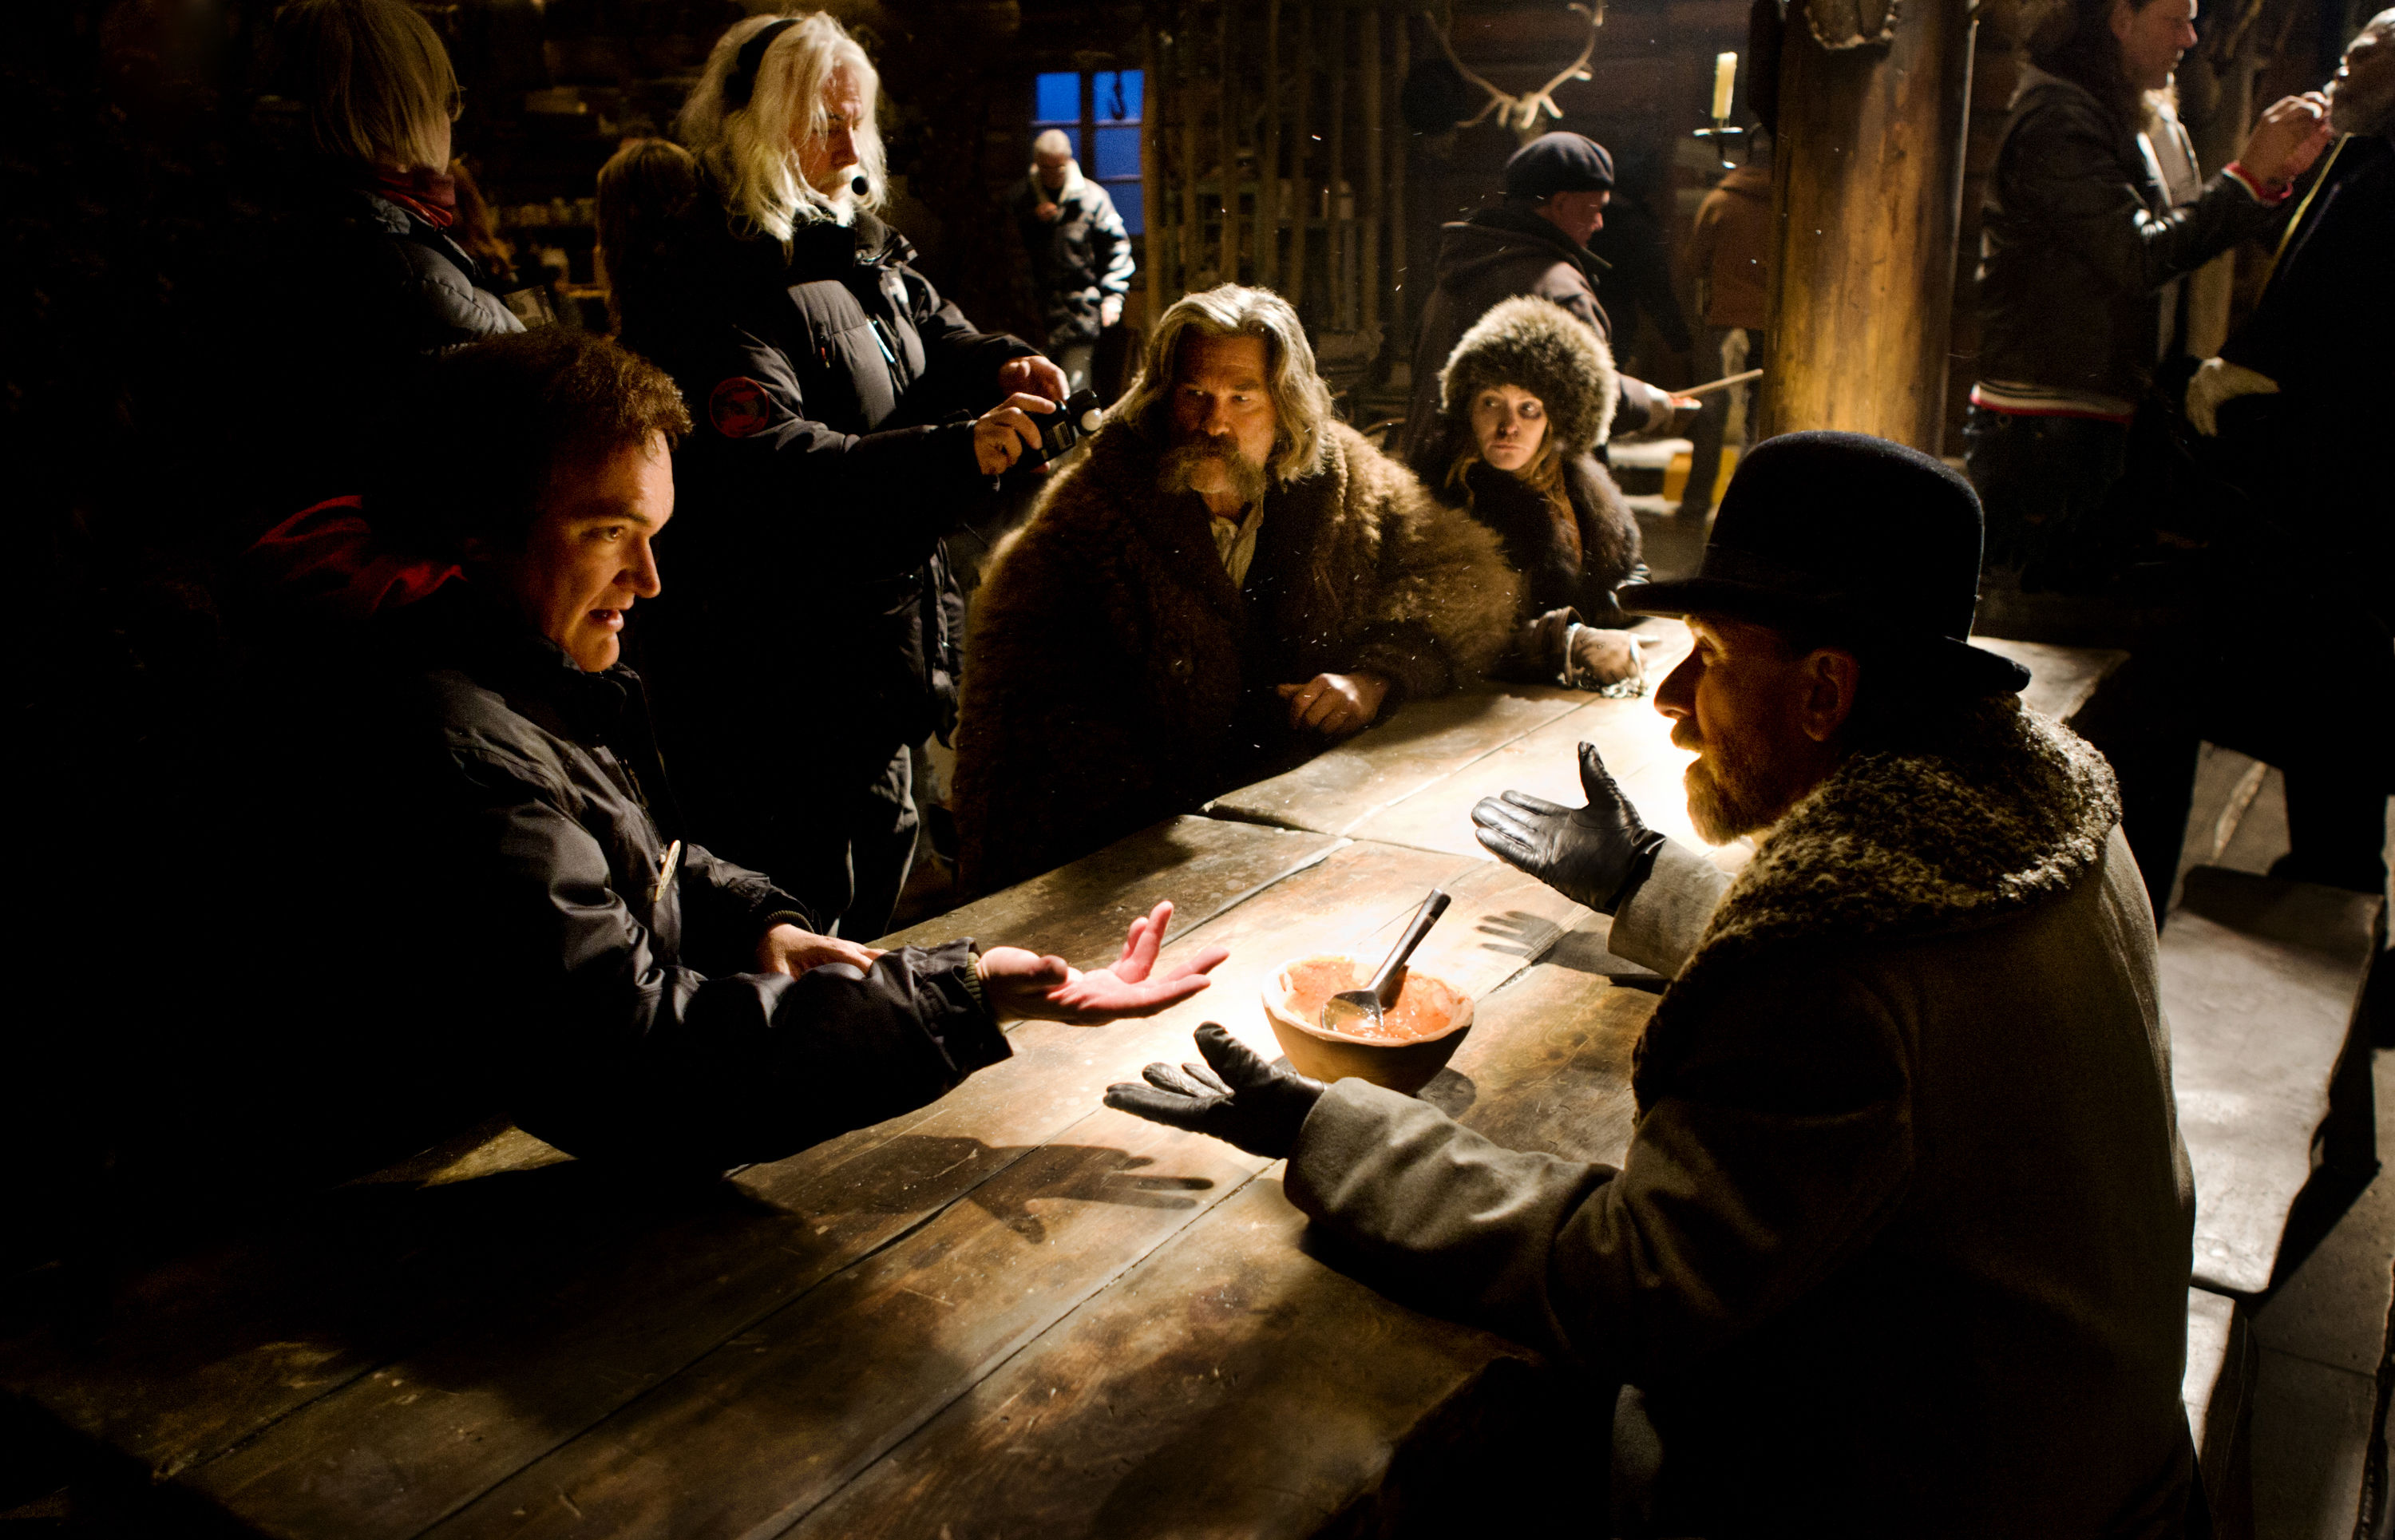 THE_HATEFUL_EIGHT_Szenenbilder_14.72dpi